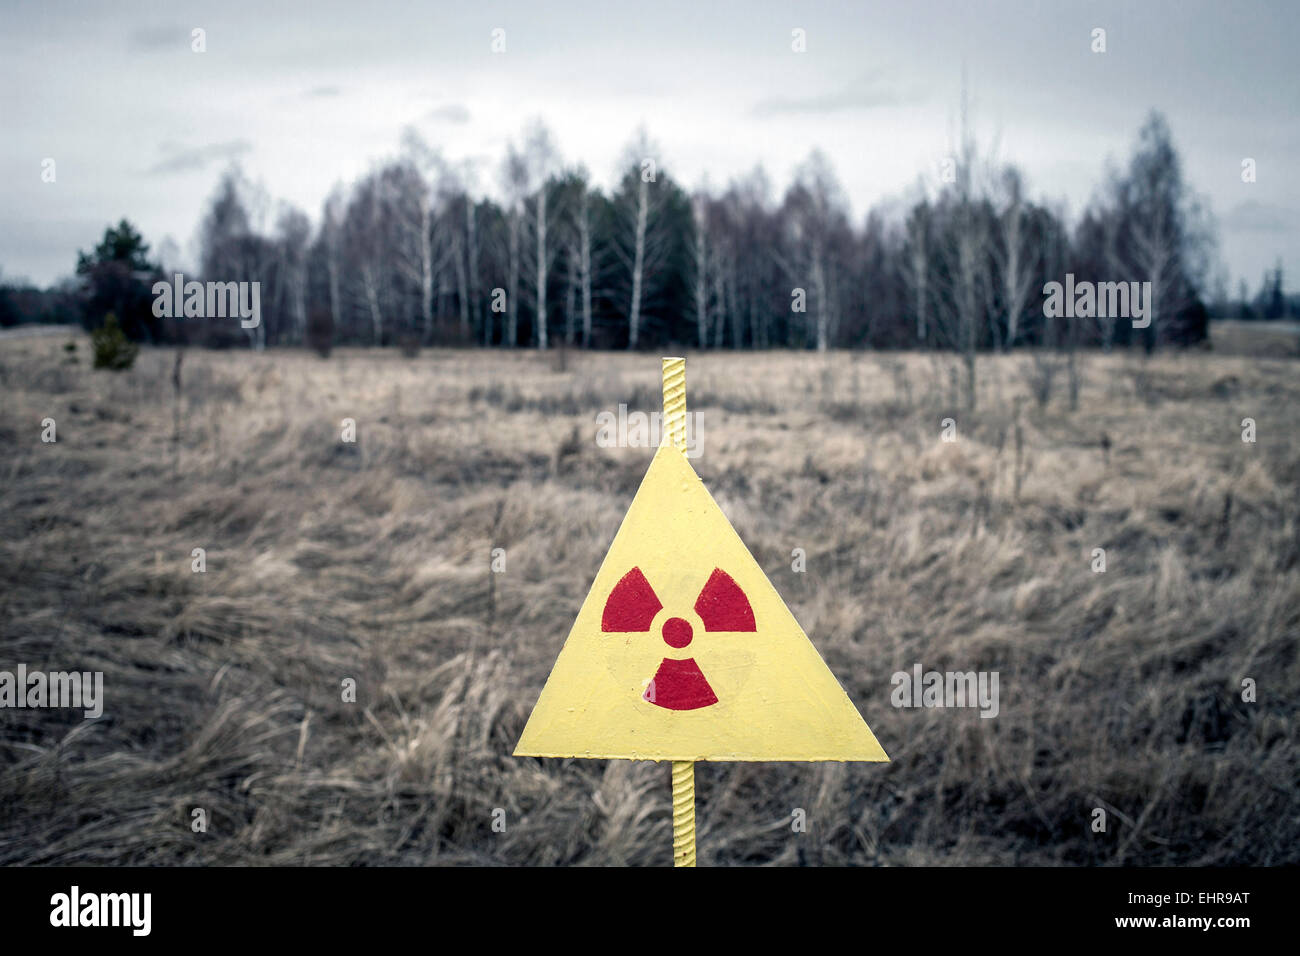 Wooded area in the contaminated zone between Pripyat and Chernobyl, Ukraine - Stock Image